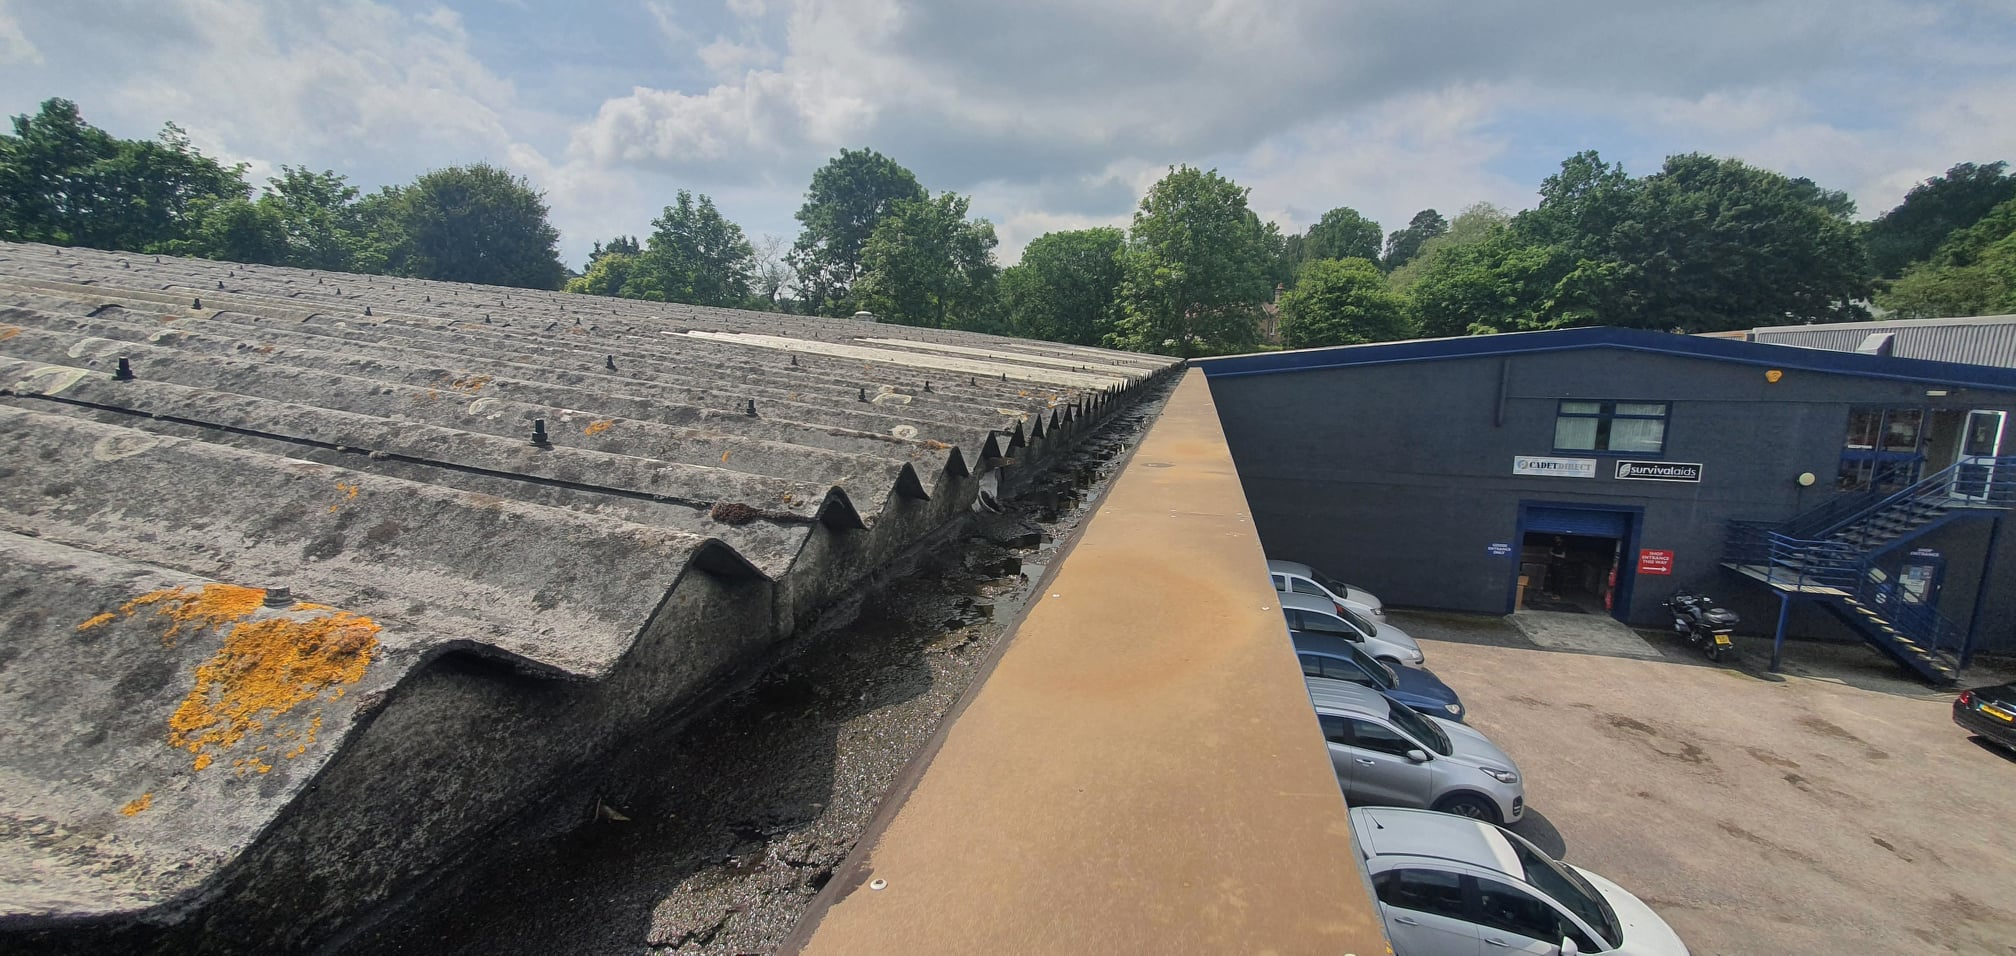 Gutter work to a warehouse roof in Crowborough East Sussex